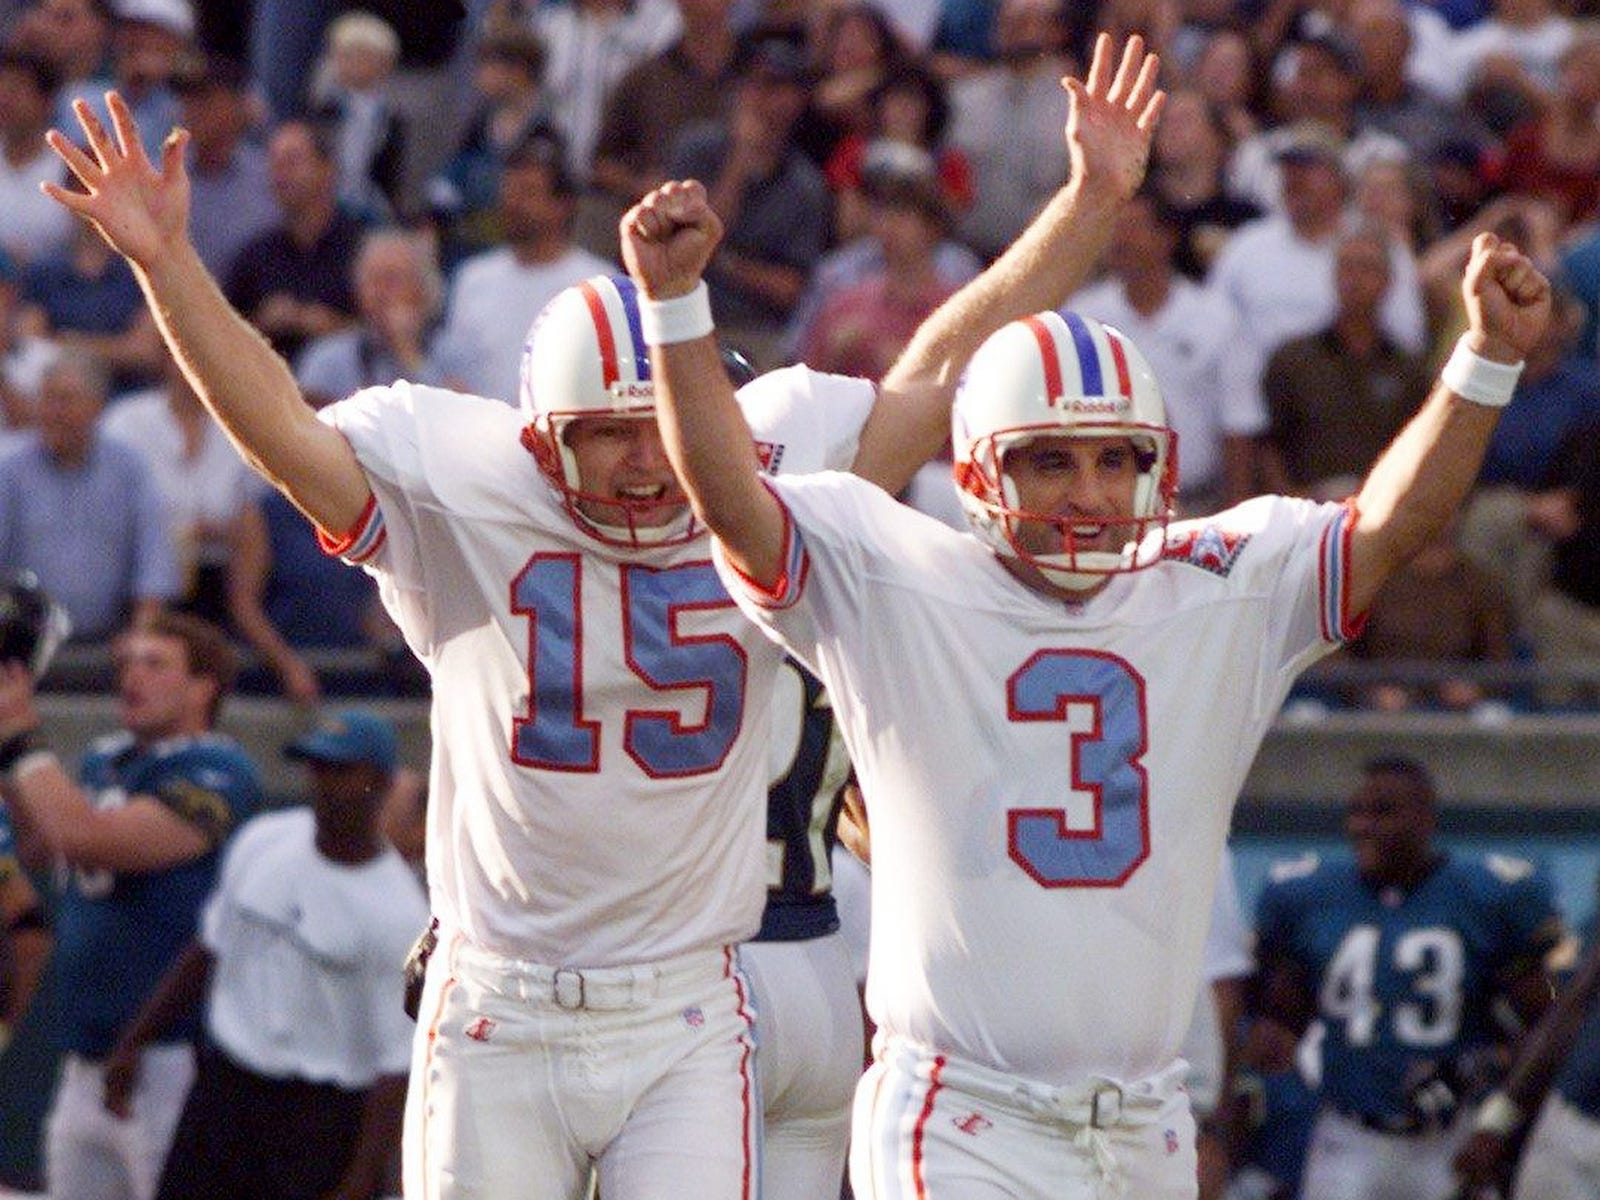 Tennessee Oilers kicker Al Del Grecco (3) and holder Craig Hentrich celebrate Dec. 13, 1998 after Del Grecco kicked the winning field goal for a 16-13 road victory against the Jacksonville Jaguars.